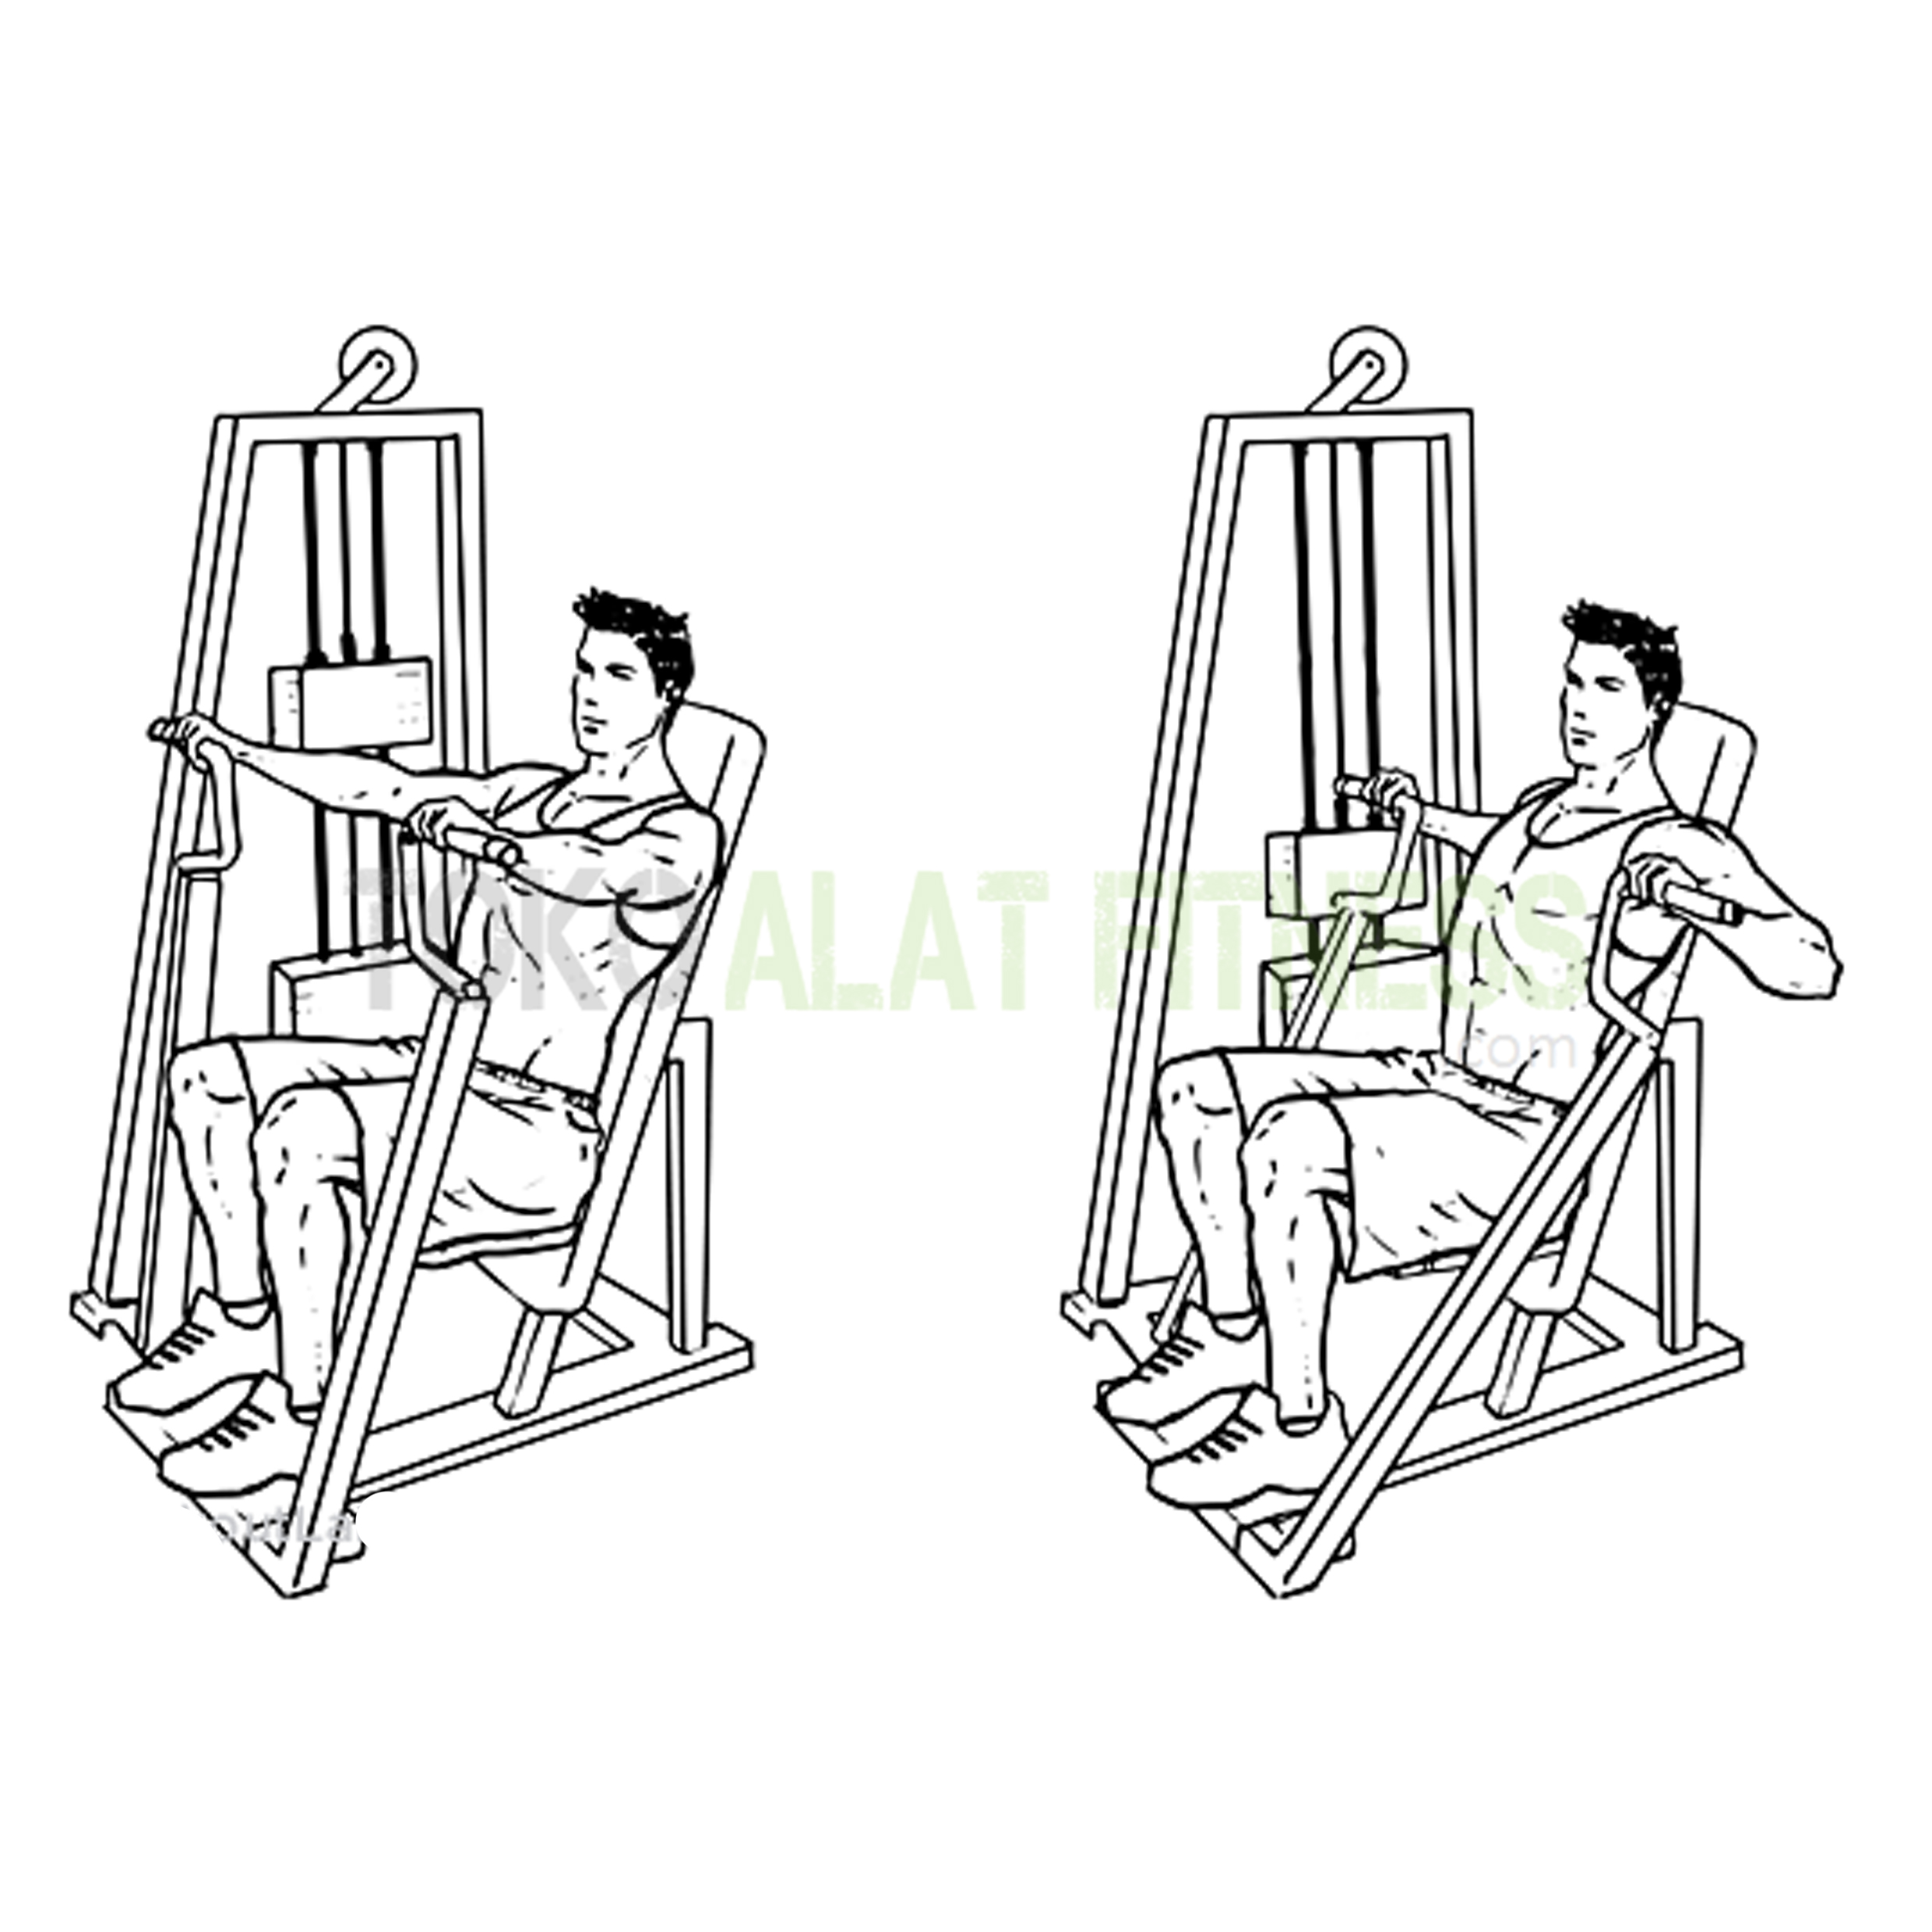 BG10 Chest Press 3 - Body Gym Chest Press ( Lokal ) - BG10